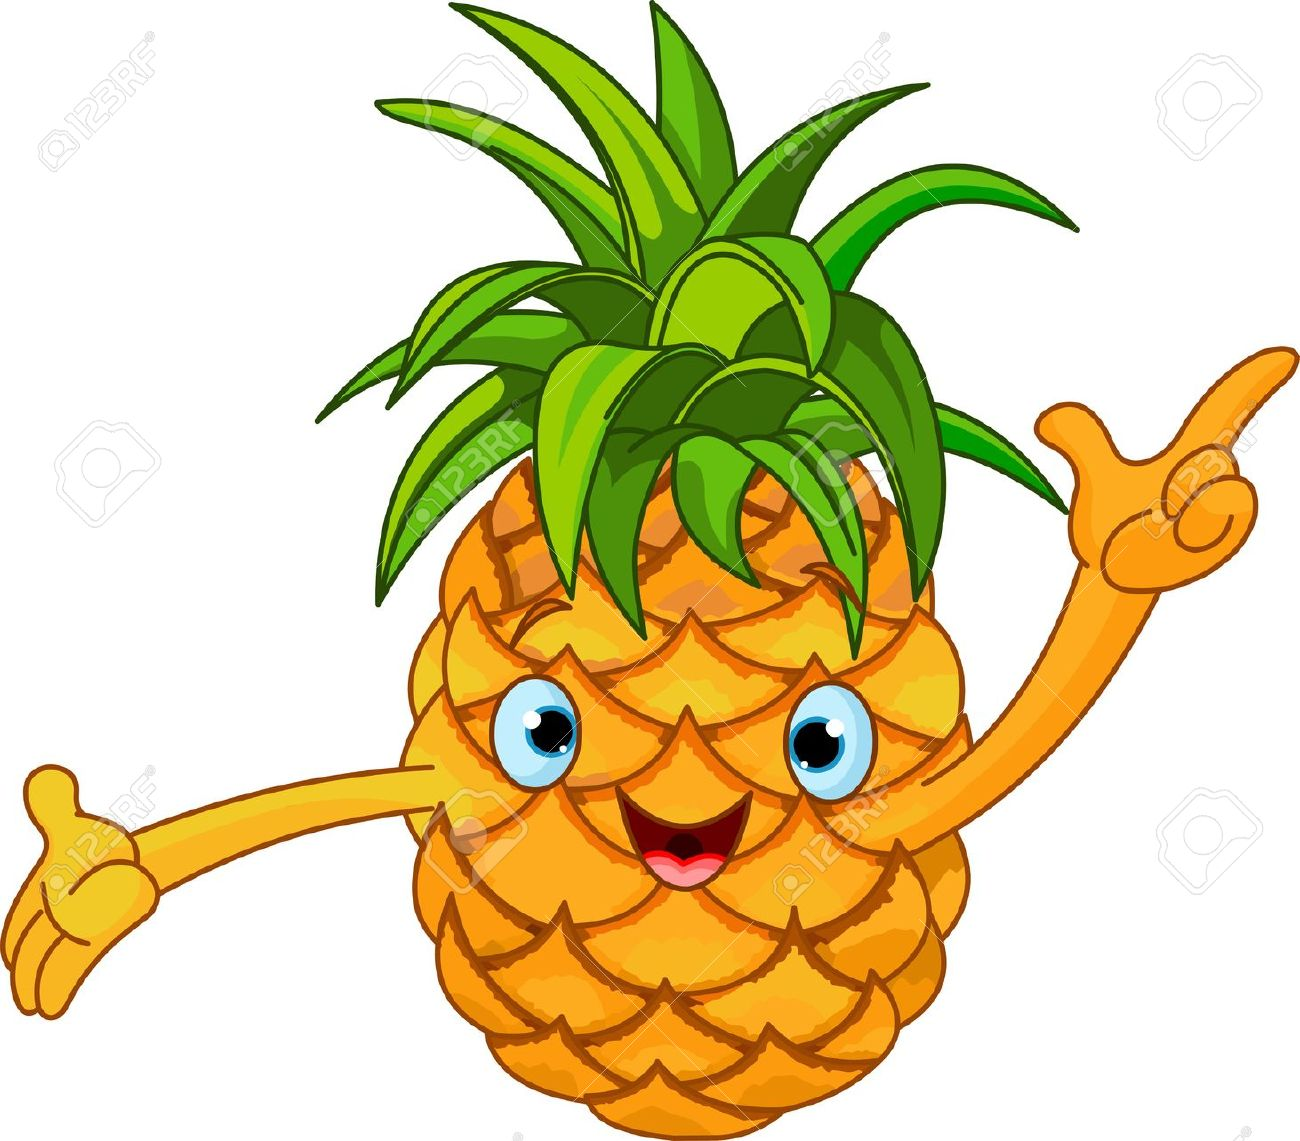 Plant clipart funny Clipart Funny clip Pineapple DownloadClipart